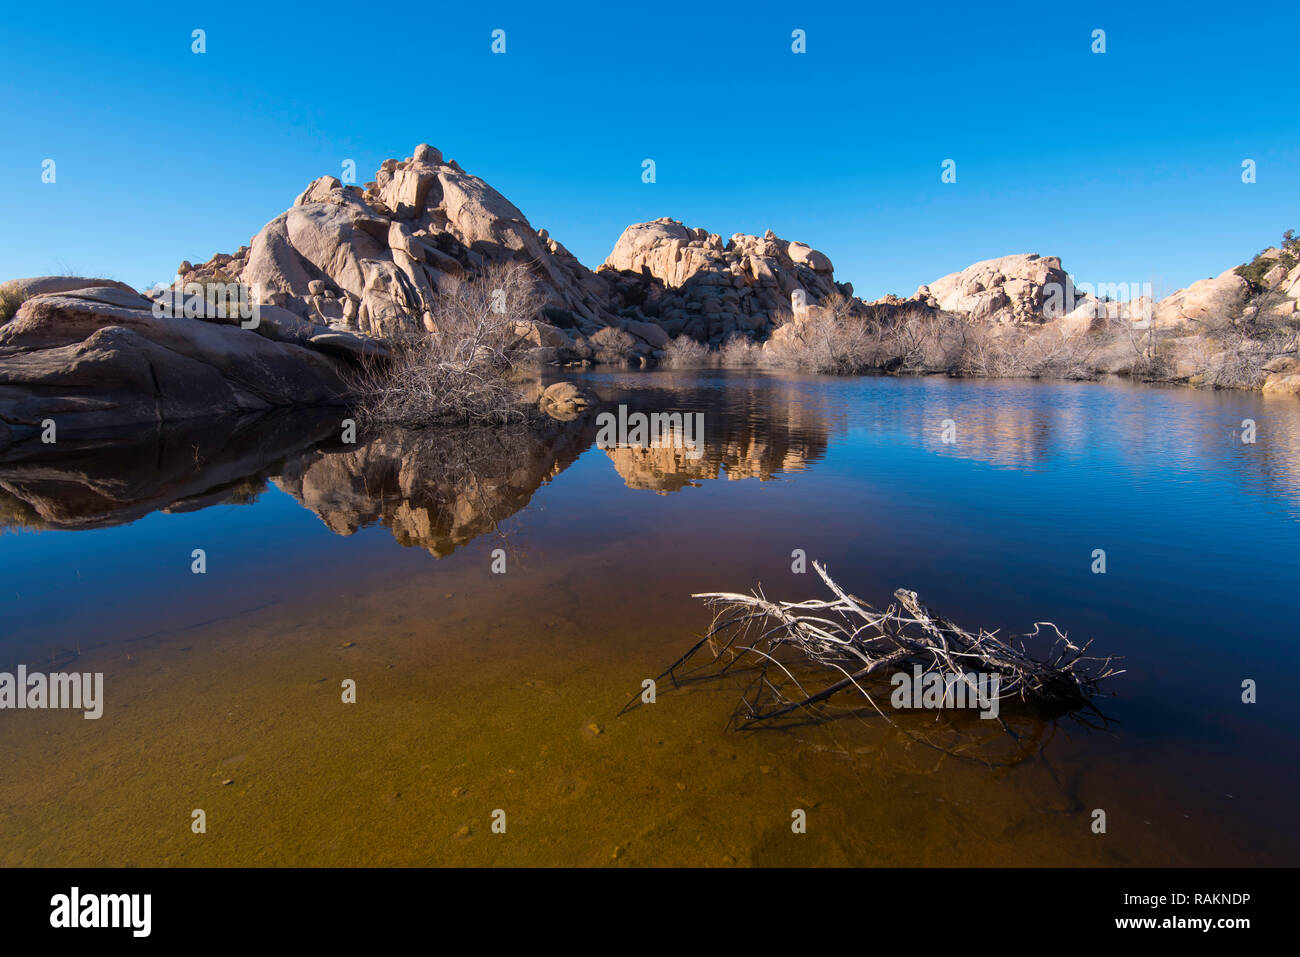 Blue sky reflected in a mirror like watering hole in Joshua Tree National Park, California, USA Stock Photo